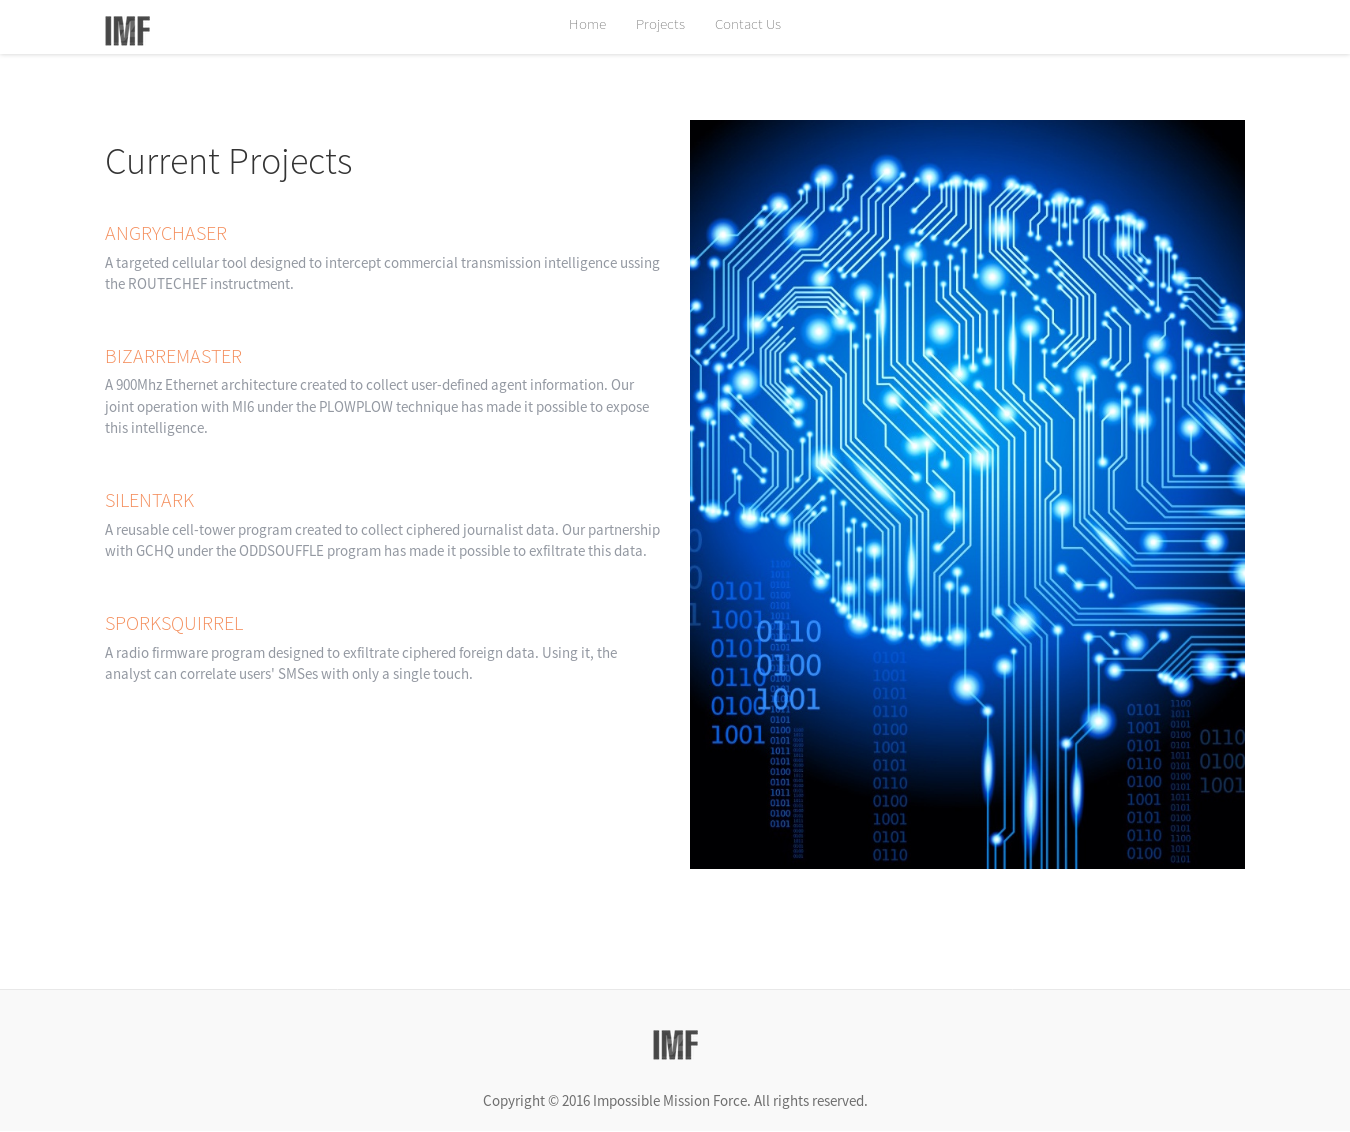 imf projects